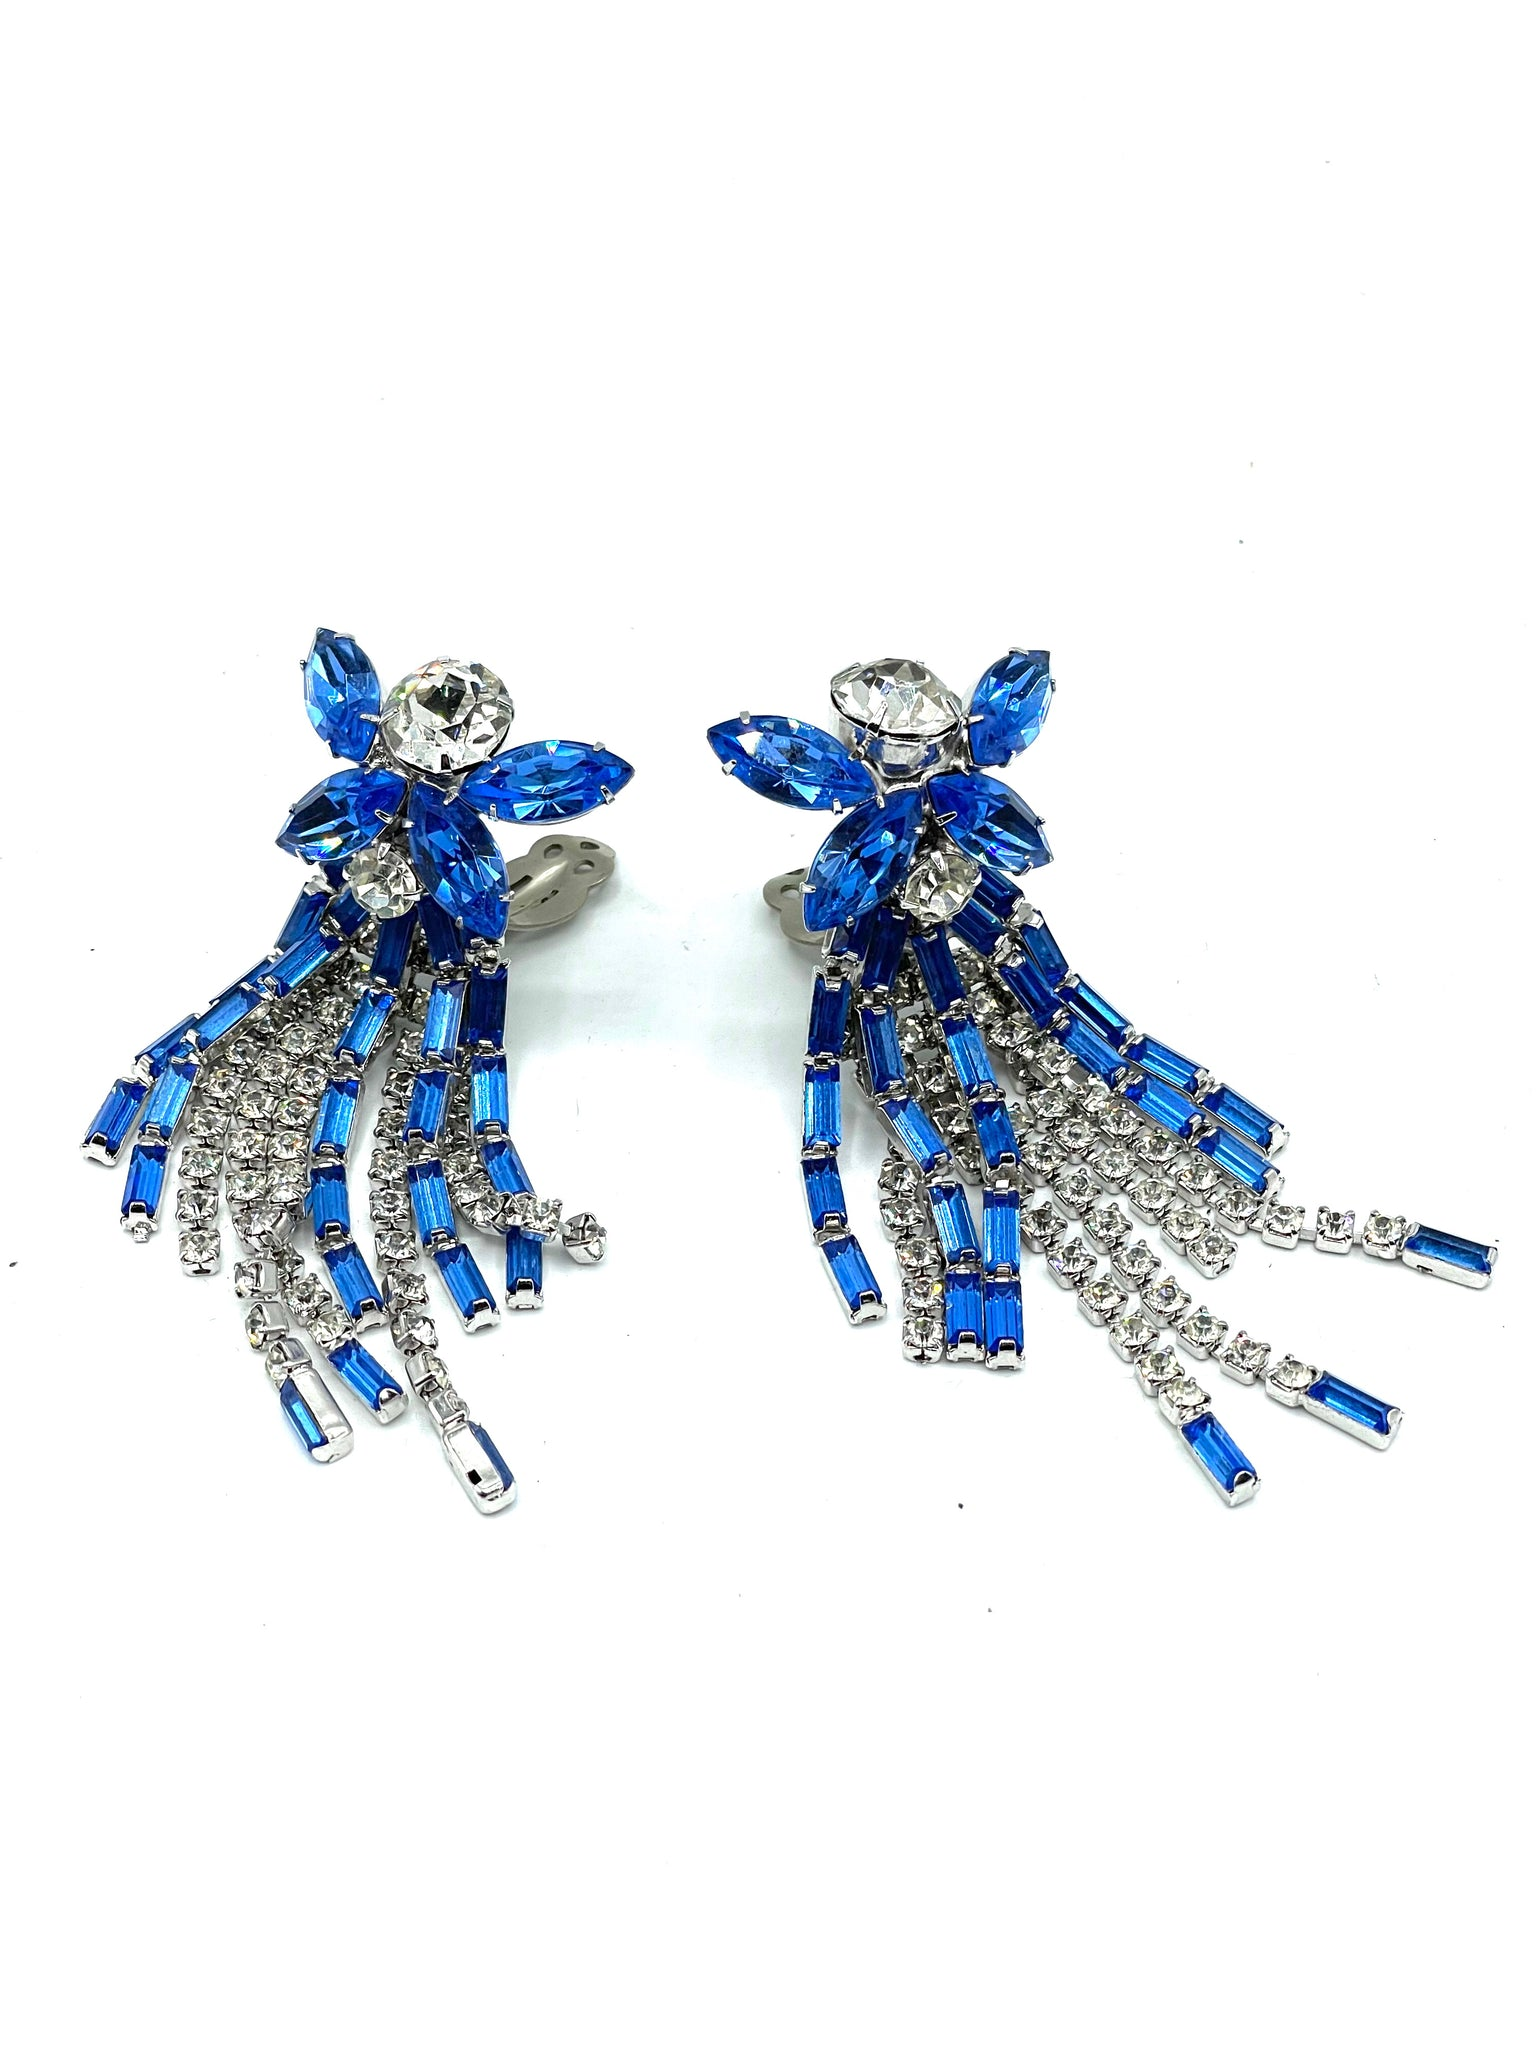 60s Showgirl Rhinestone Chandelier Earrings in Blue and Clear FRONT 2 of 3